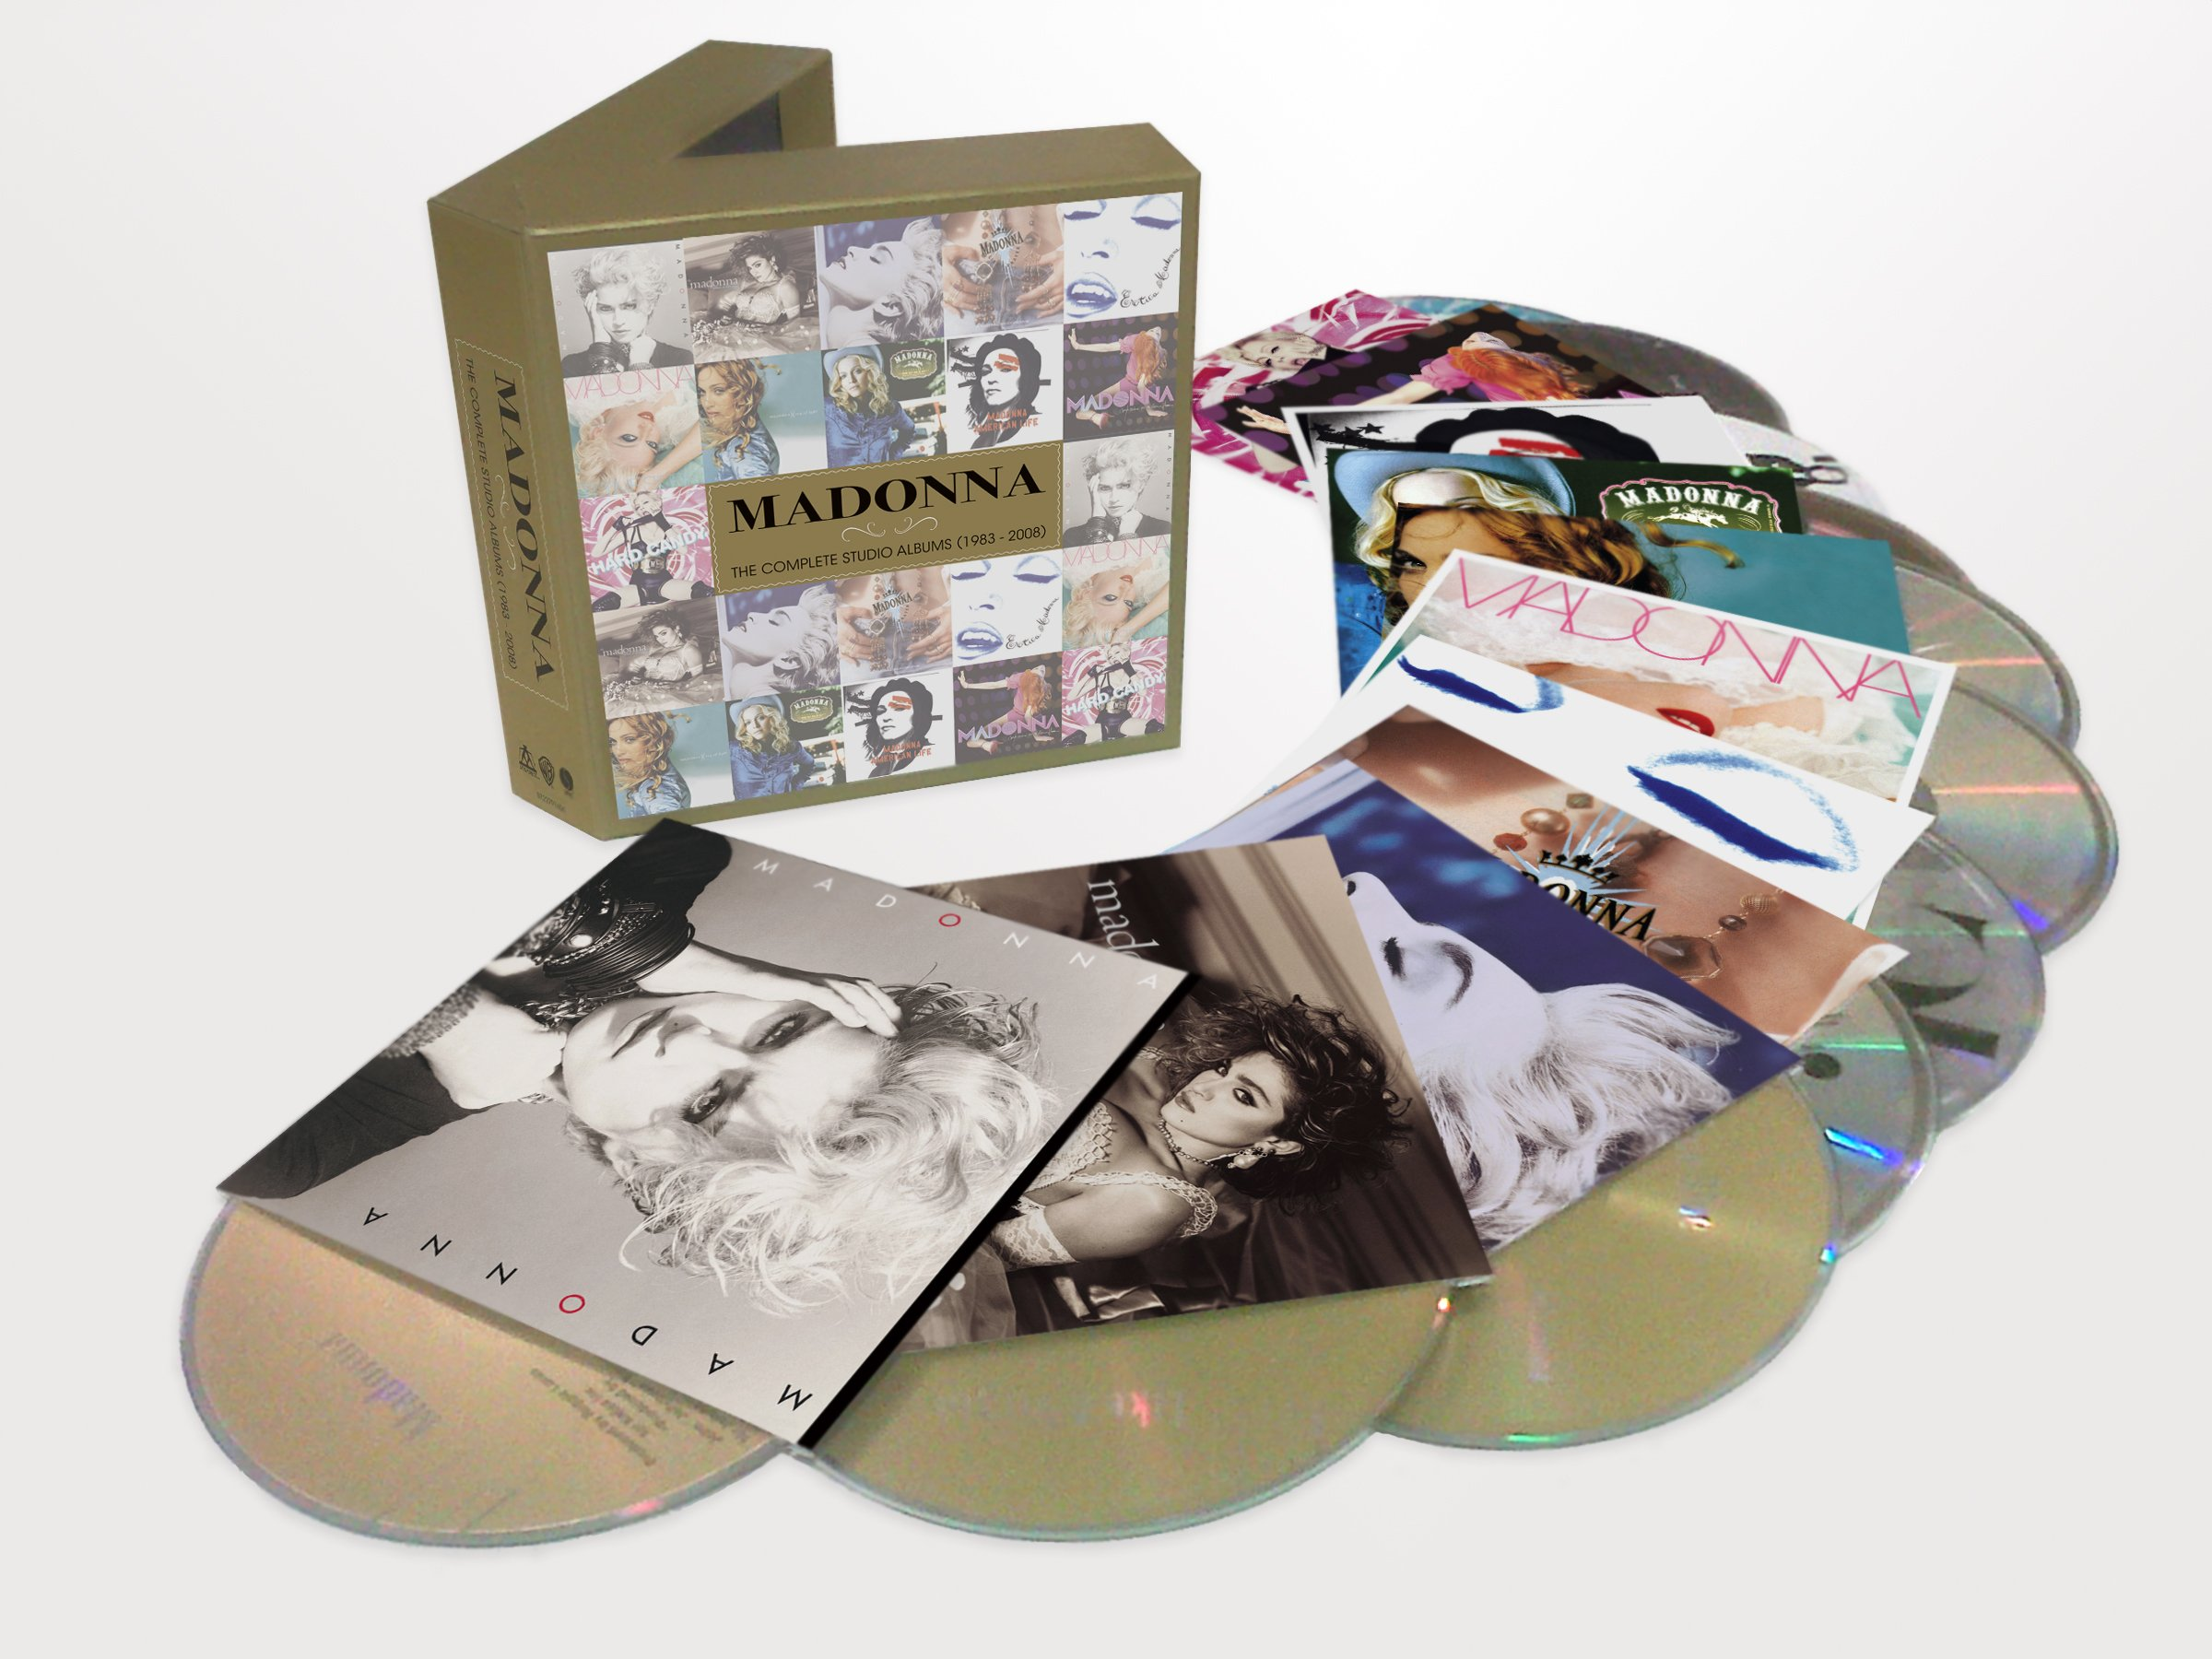 Madonna - The Complete Studio Albums 1983 - 2008 by Warner Europe